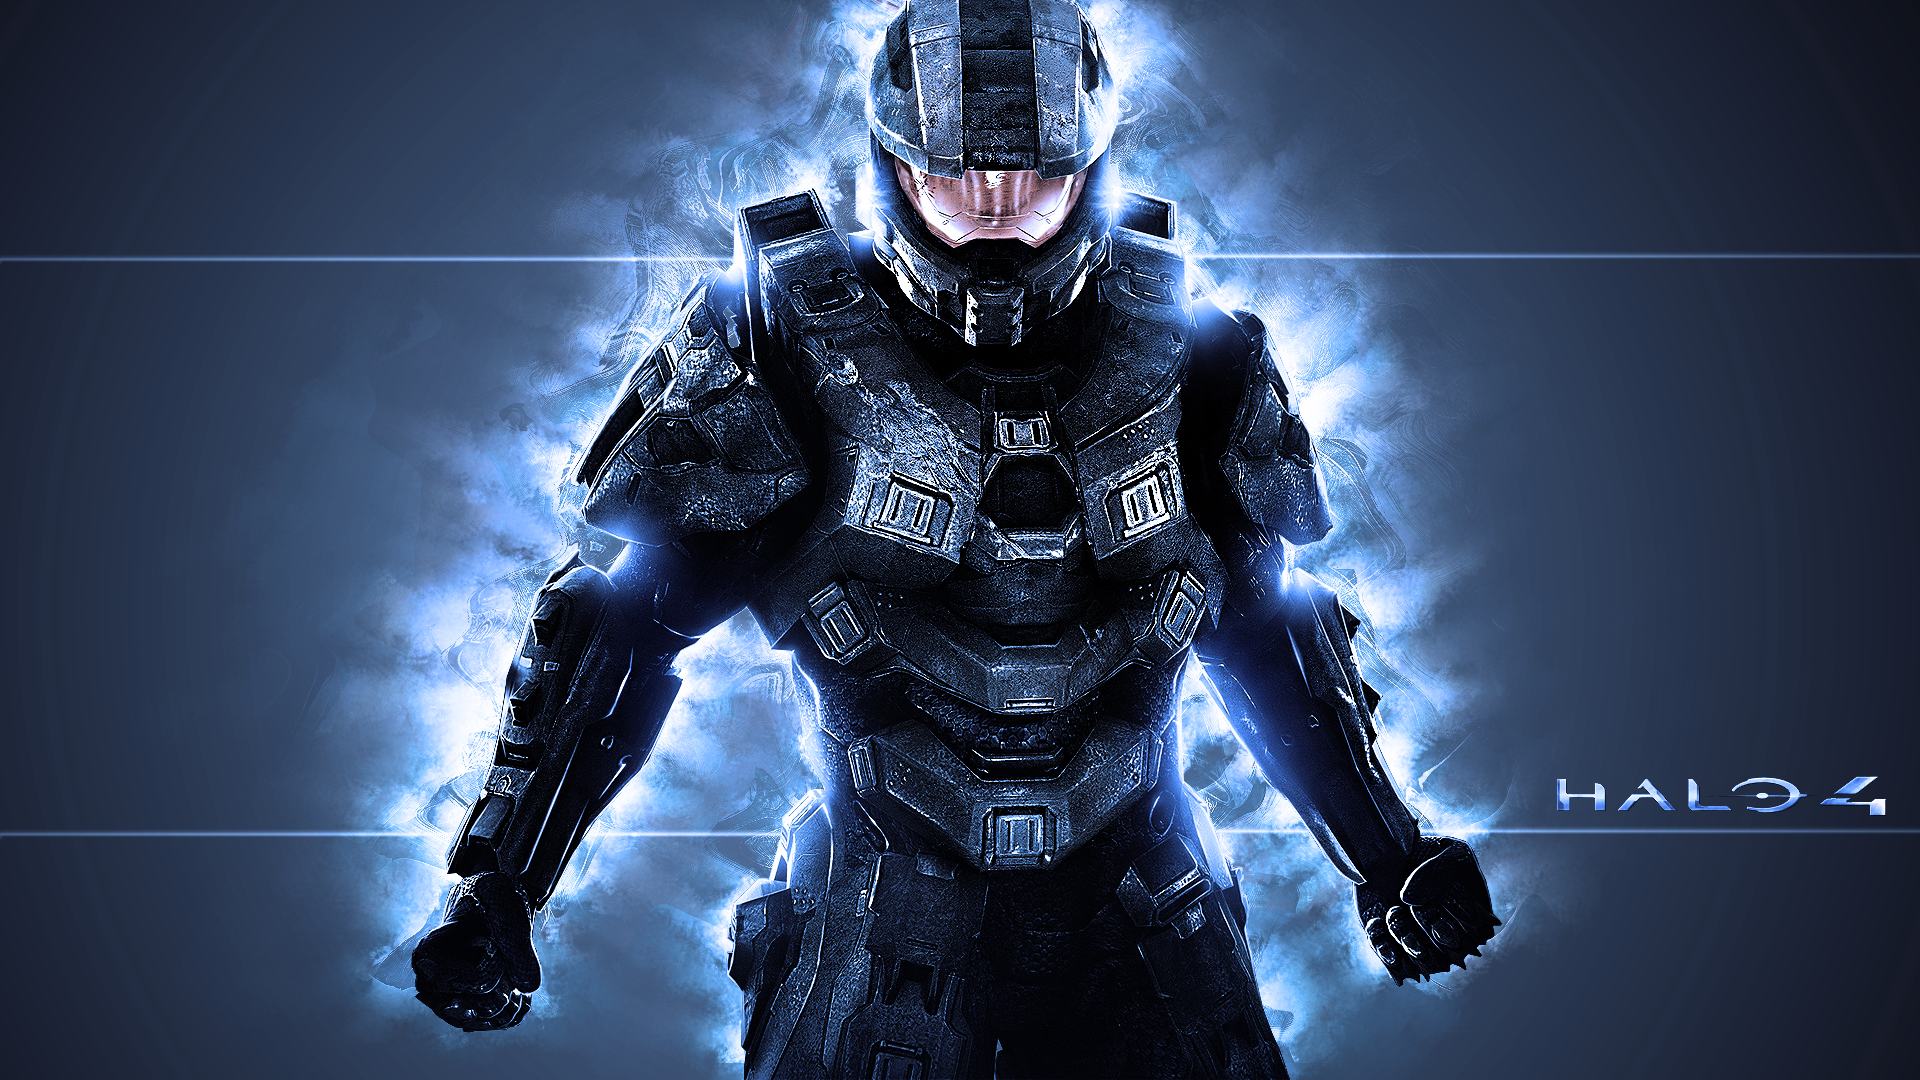 Halo 4 Master Chief Wallpaper Themes HD 1920x1080